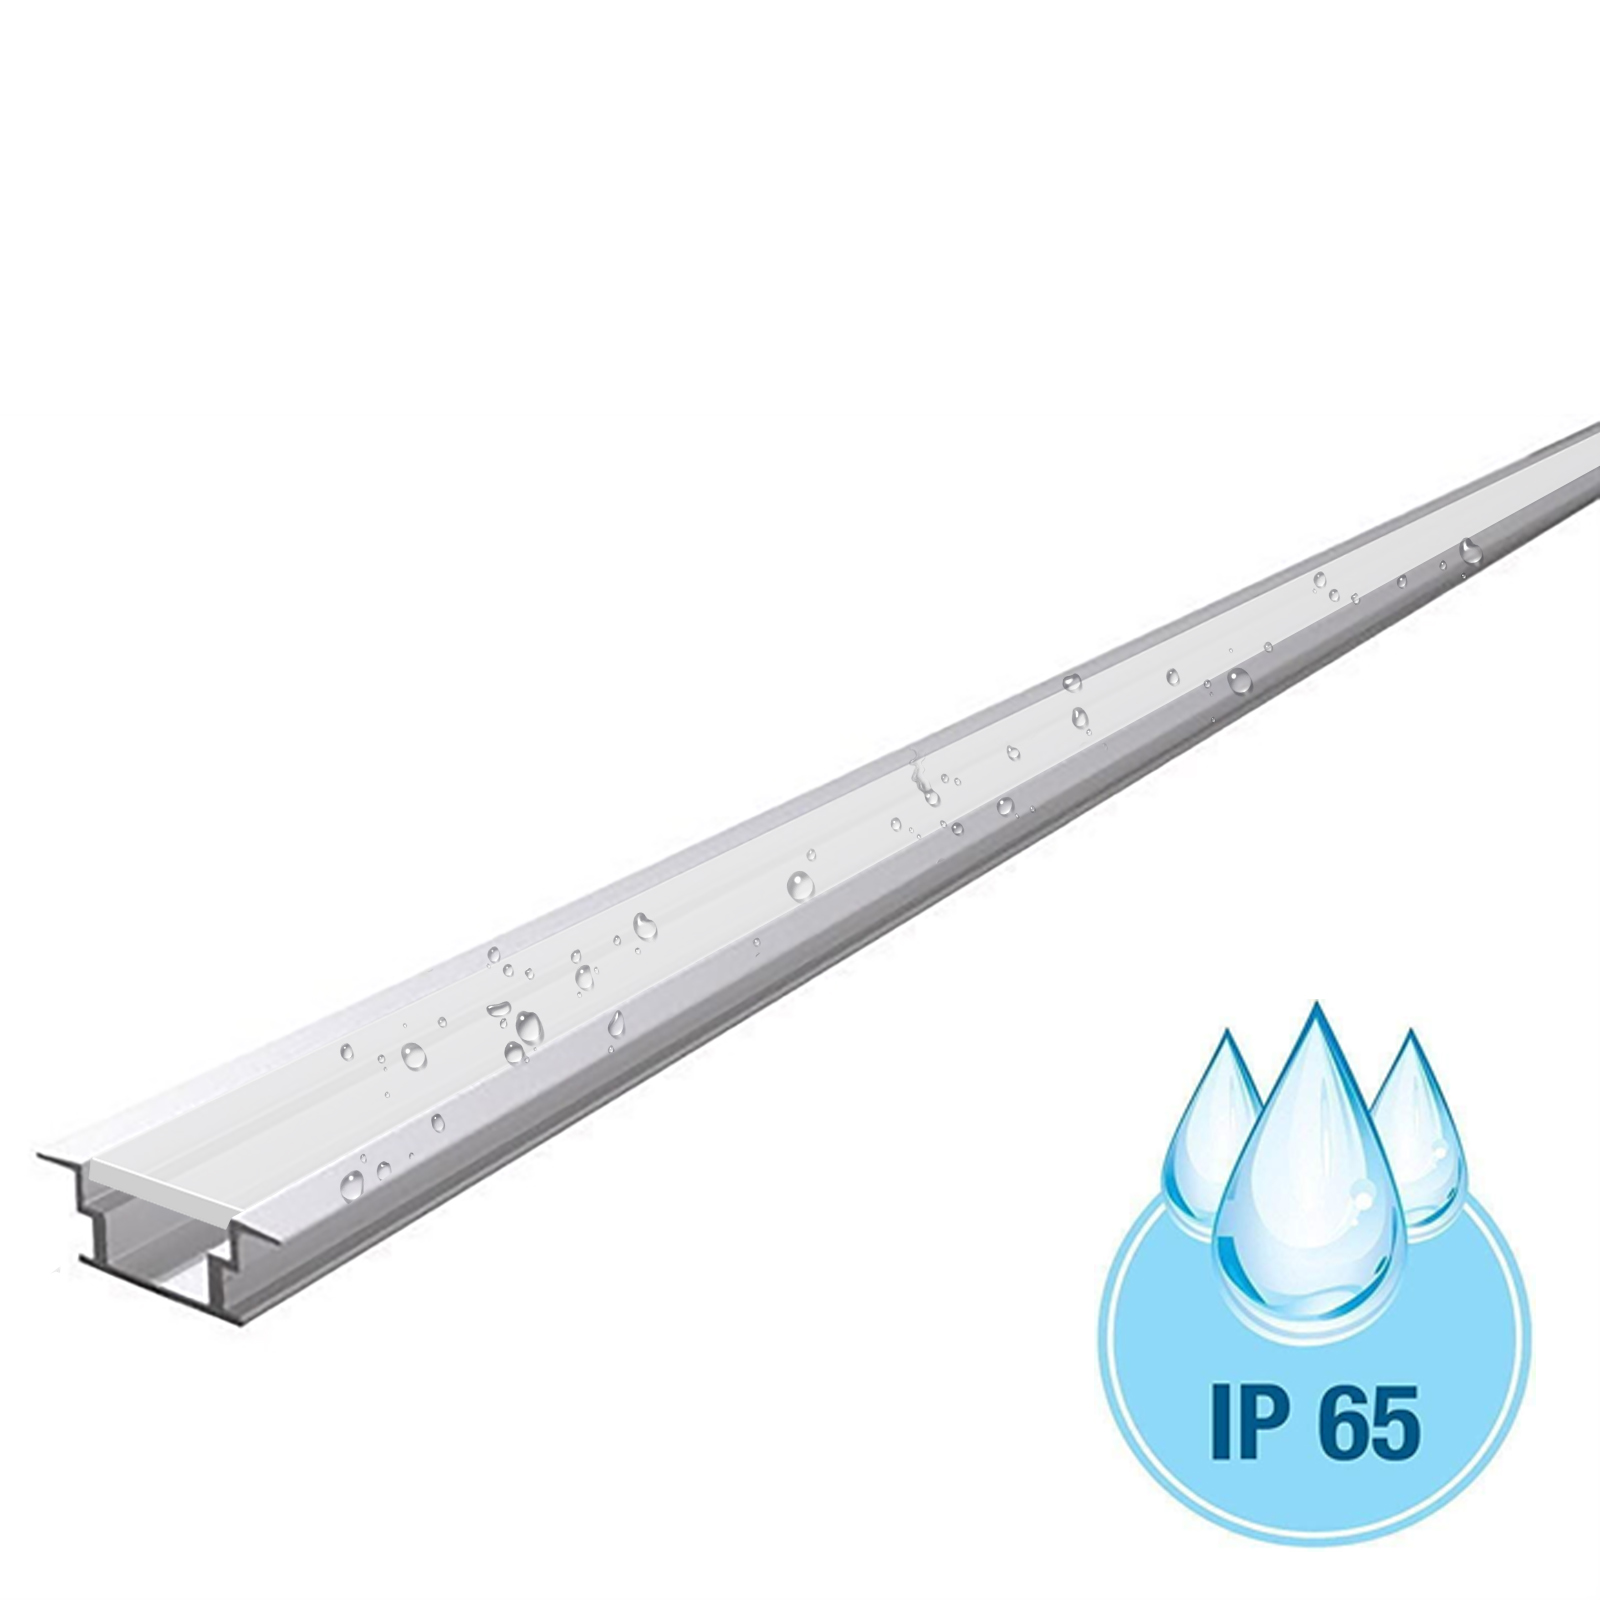 Profile slim aluminum 30mm T-FLAT IP65 for LED strips recessed wooden floor walls ceilings